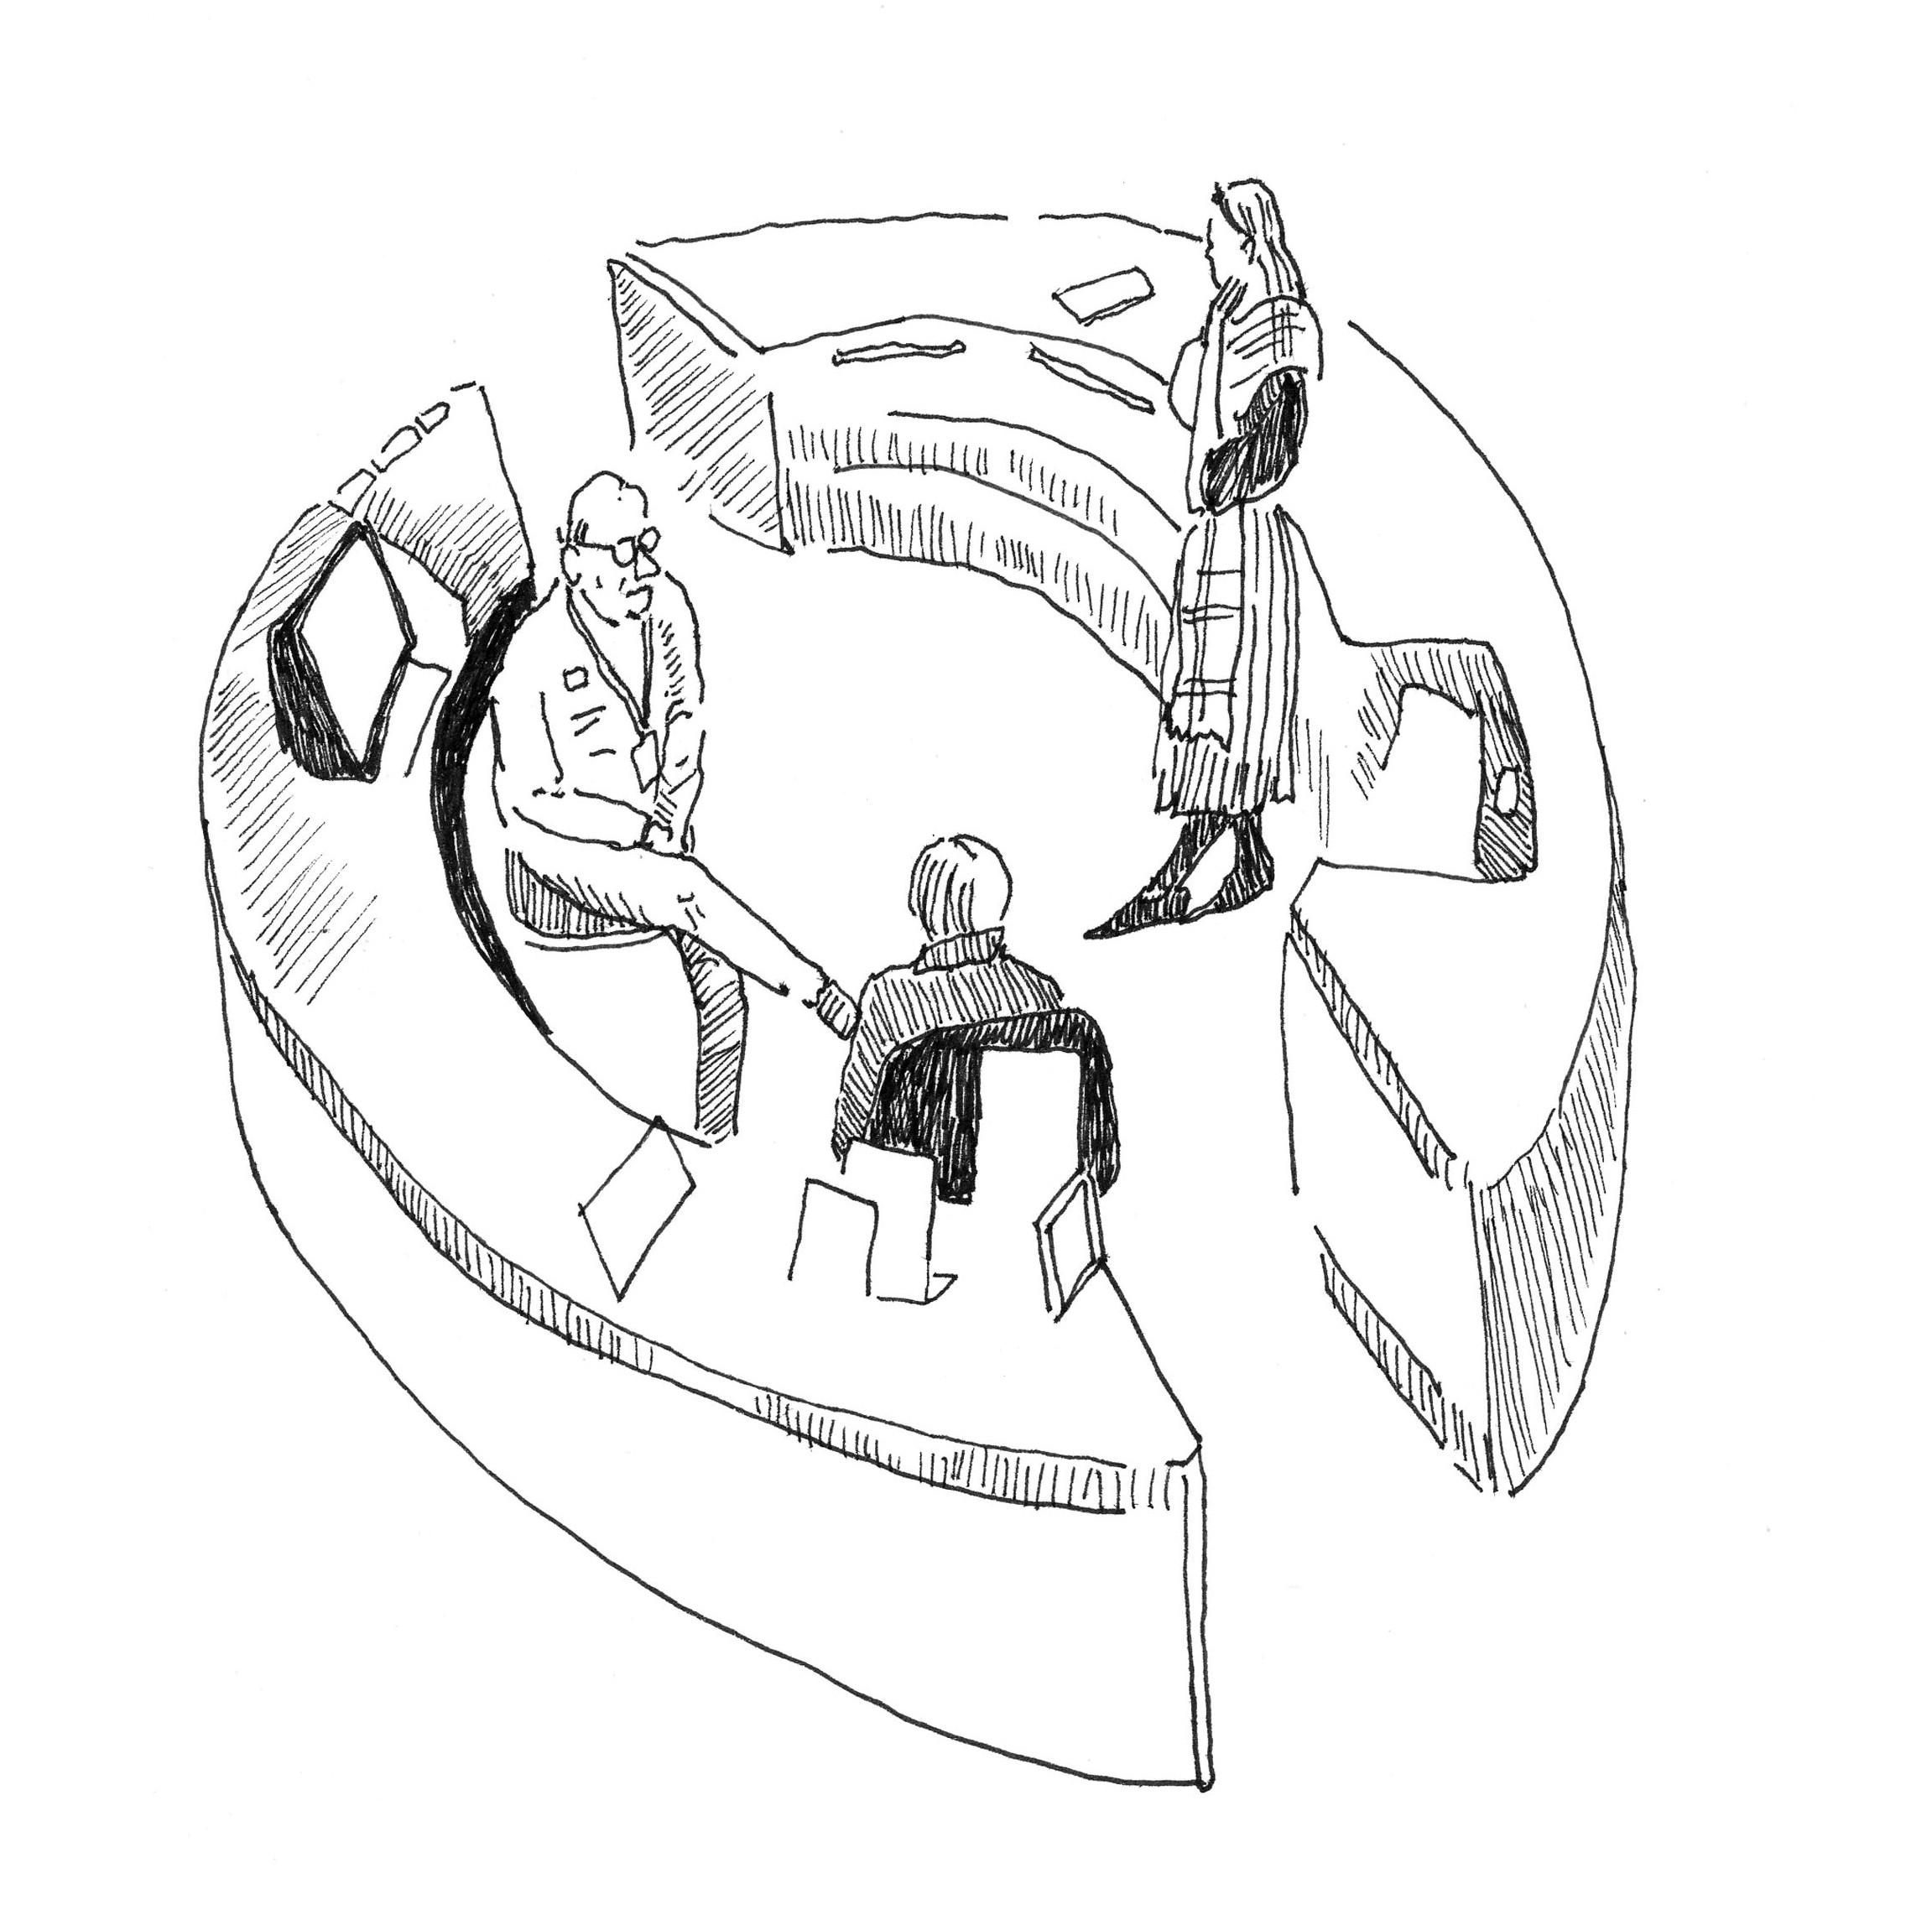 A drawing of museum staff at the visitor desk, as drawn from above